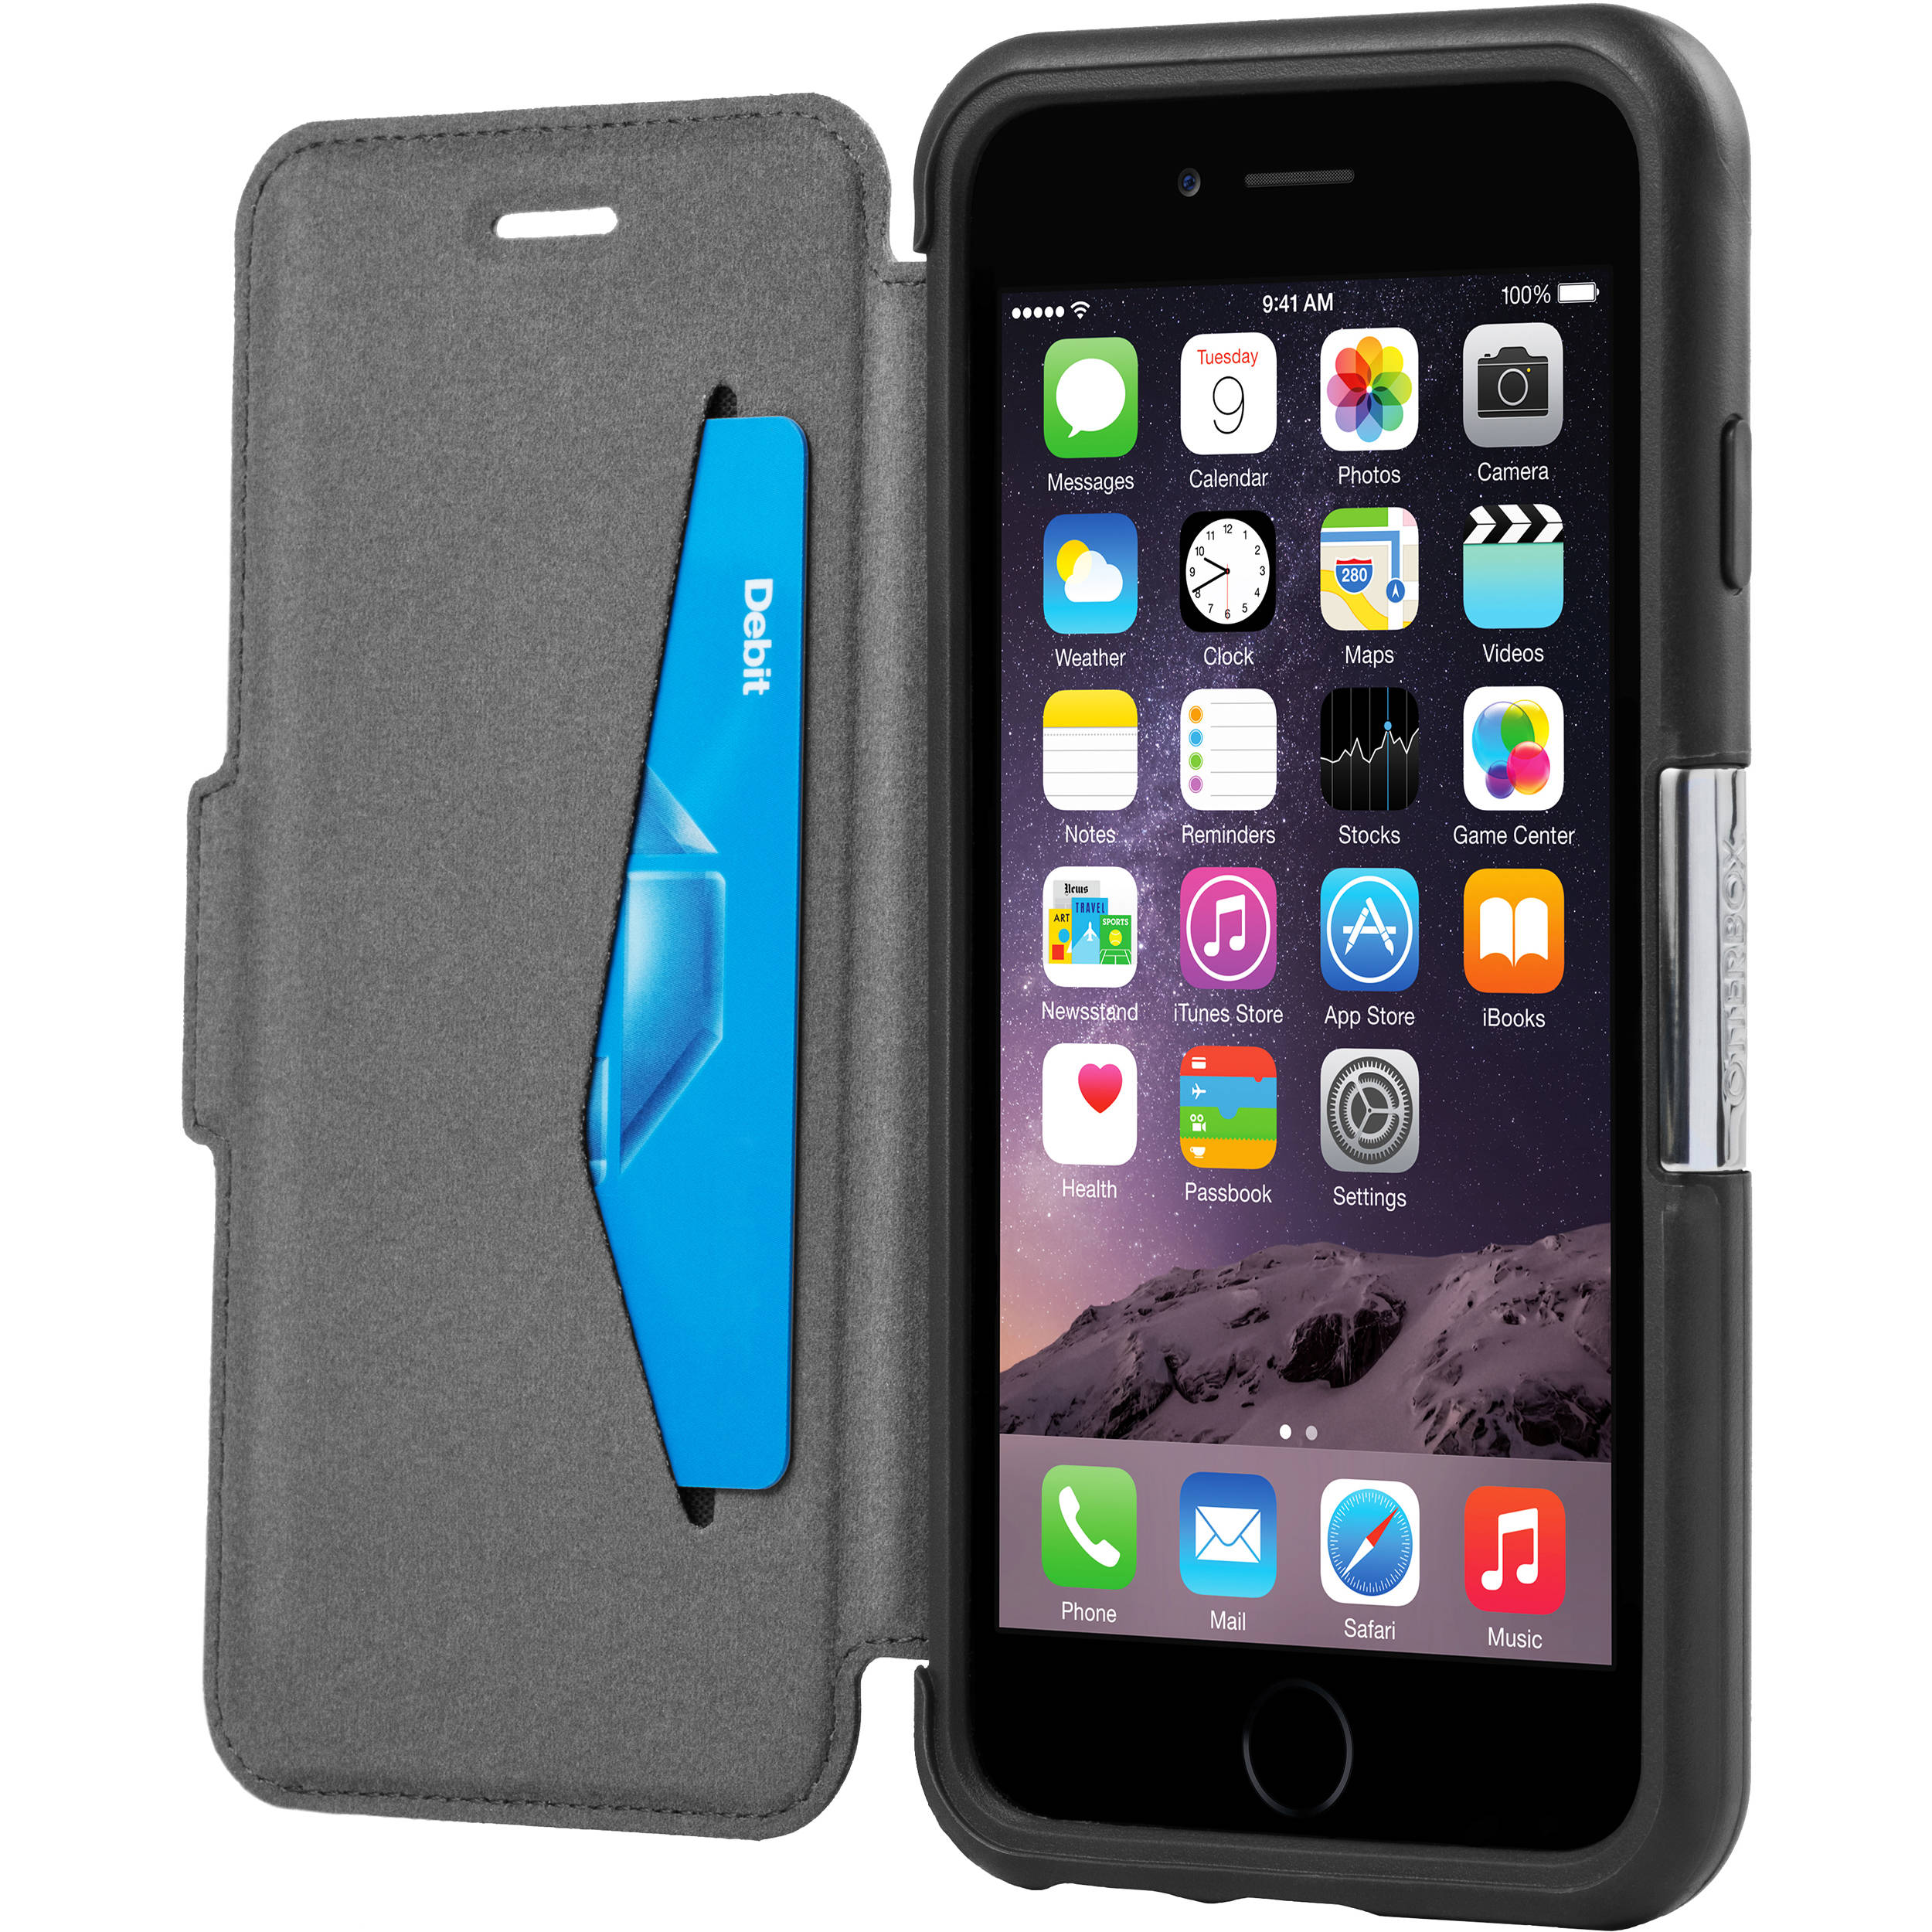 reputable site 77c9a ac6a9 OtterBox Strada Case for iPhone 6/6s (New Minimalism)